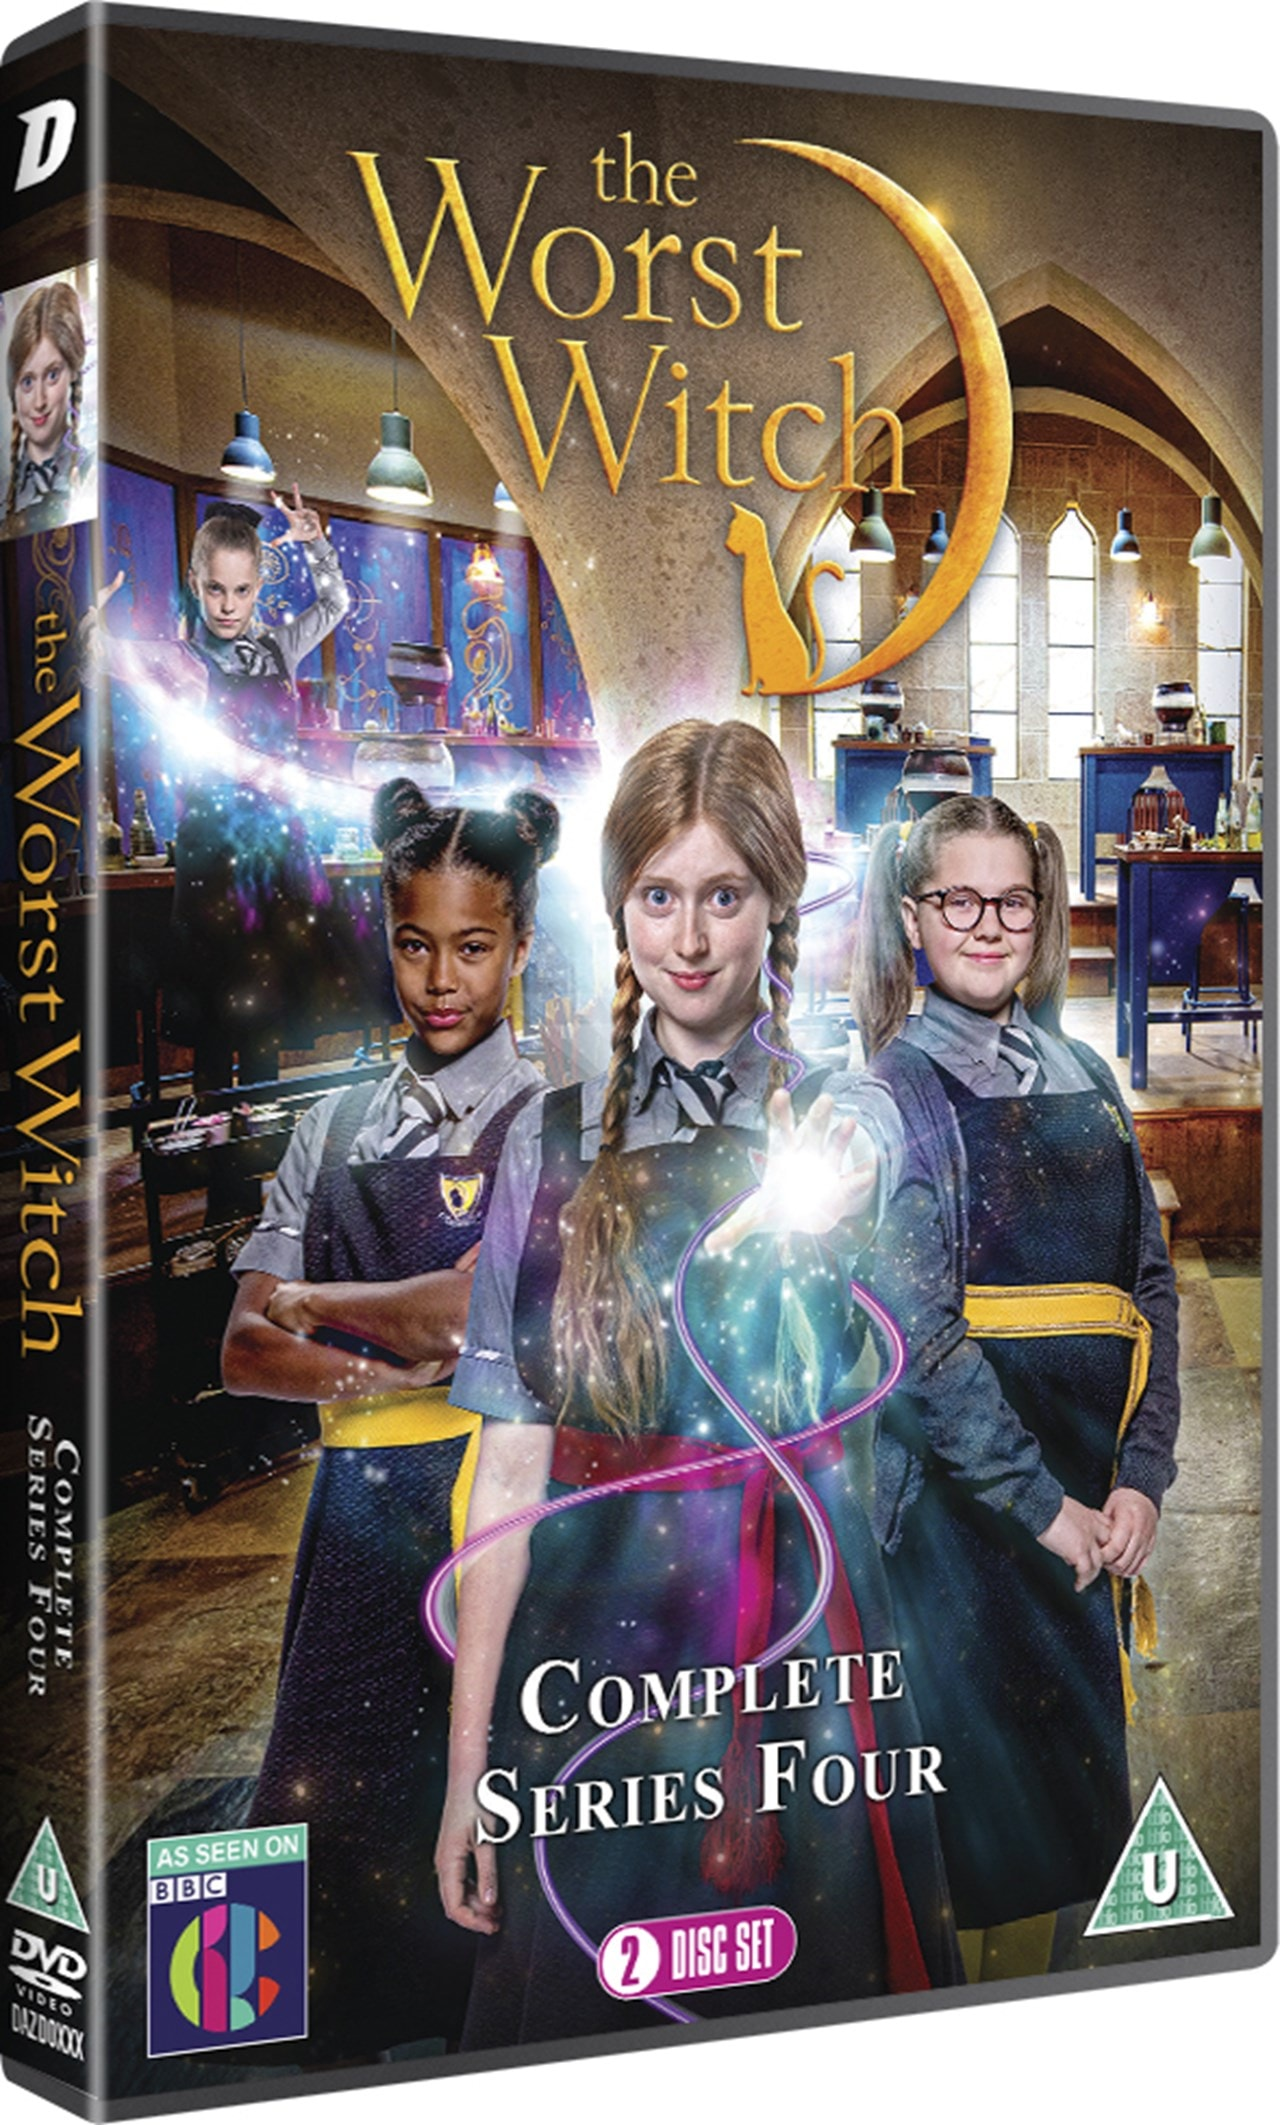 The Worst Witch: Complete Series 4 - 2